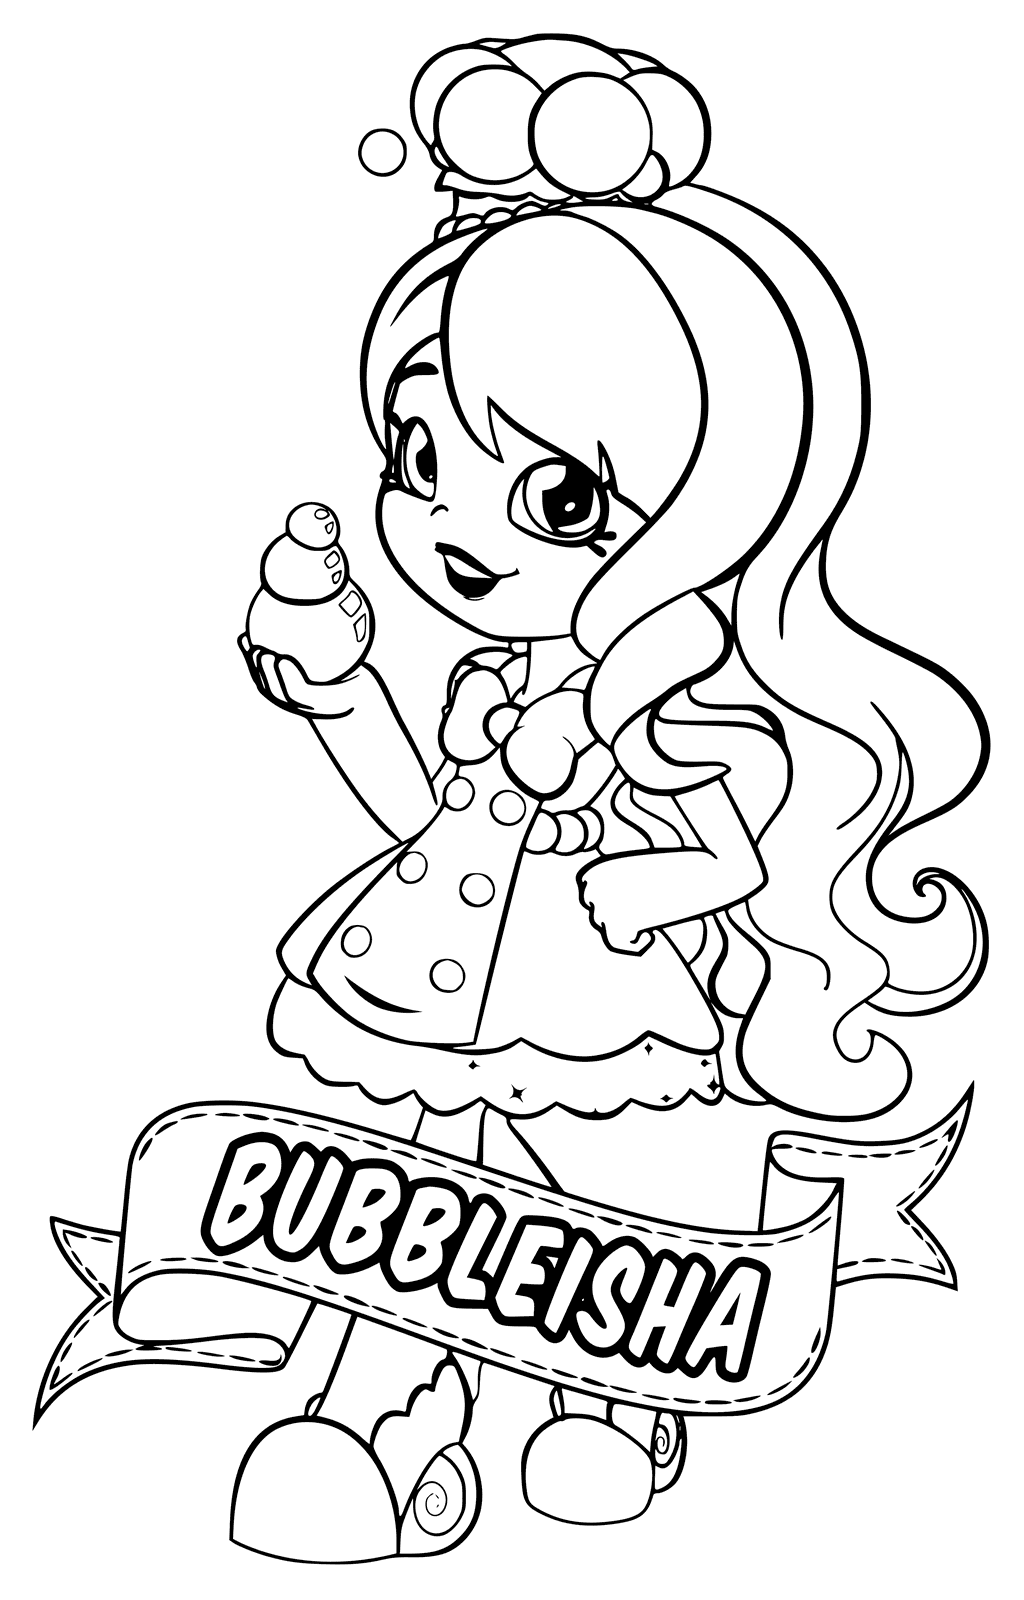 Shopkins World Vacation Coloring Pages You'll Love